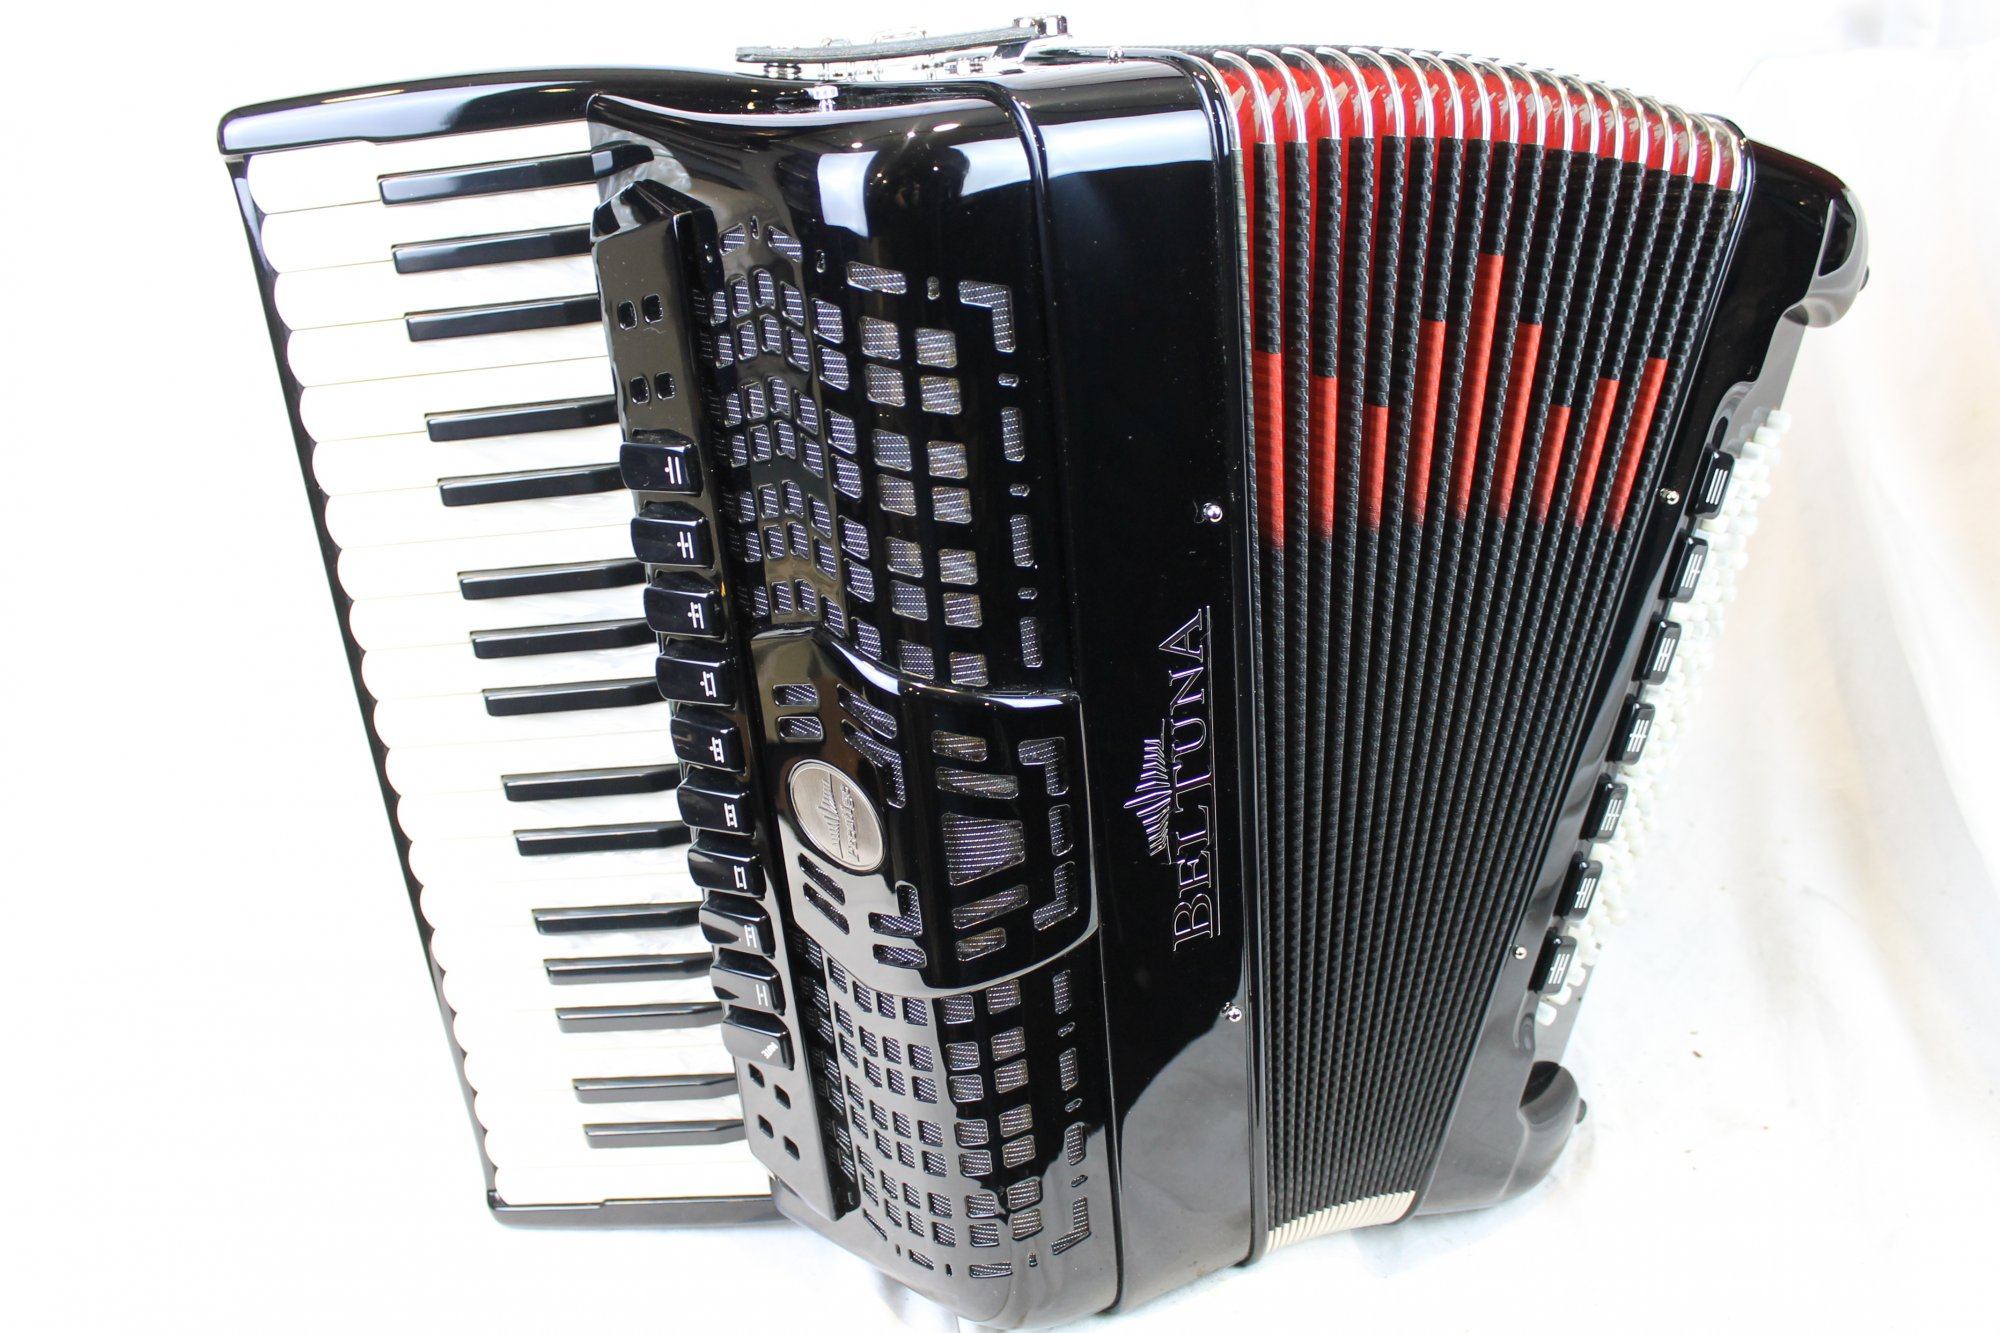 NEW Black Beltuna Prestige IV Piano Accordion LMMM 37 96